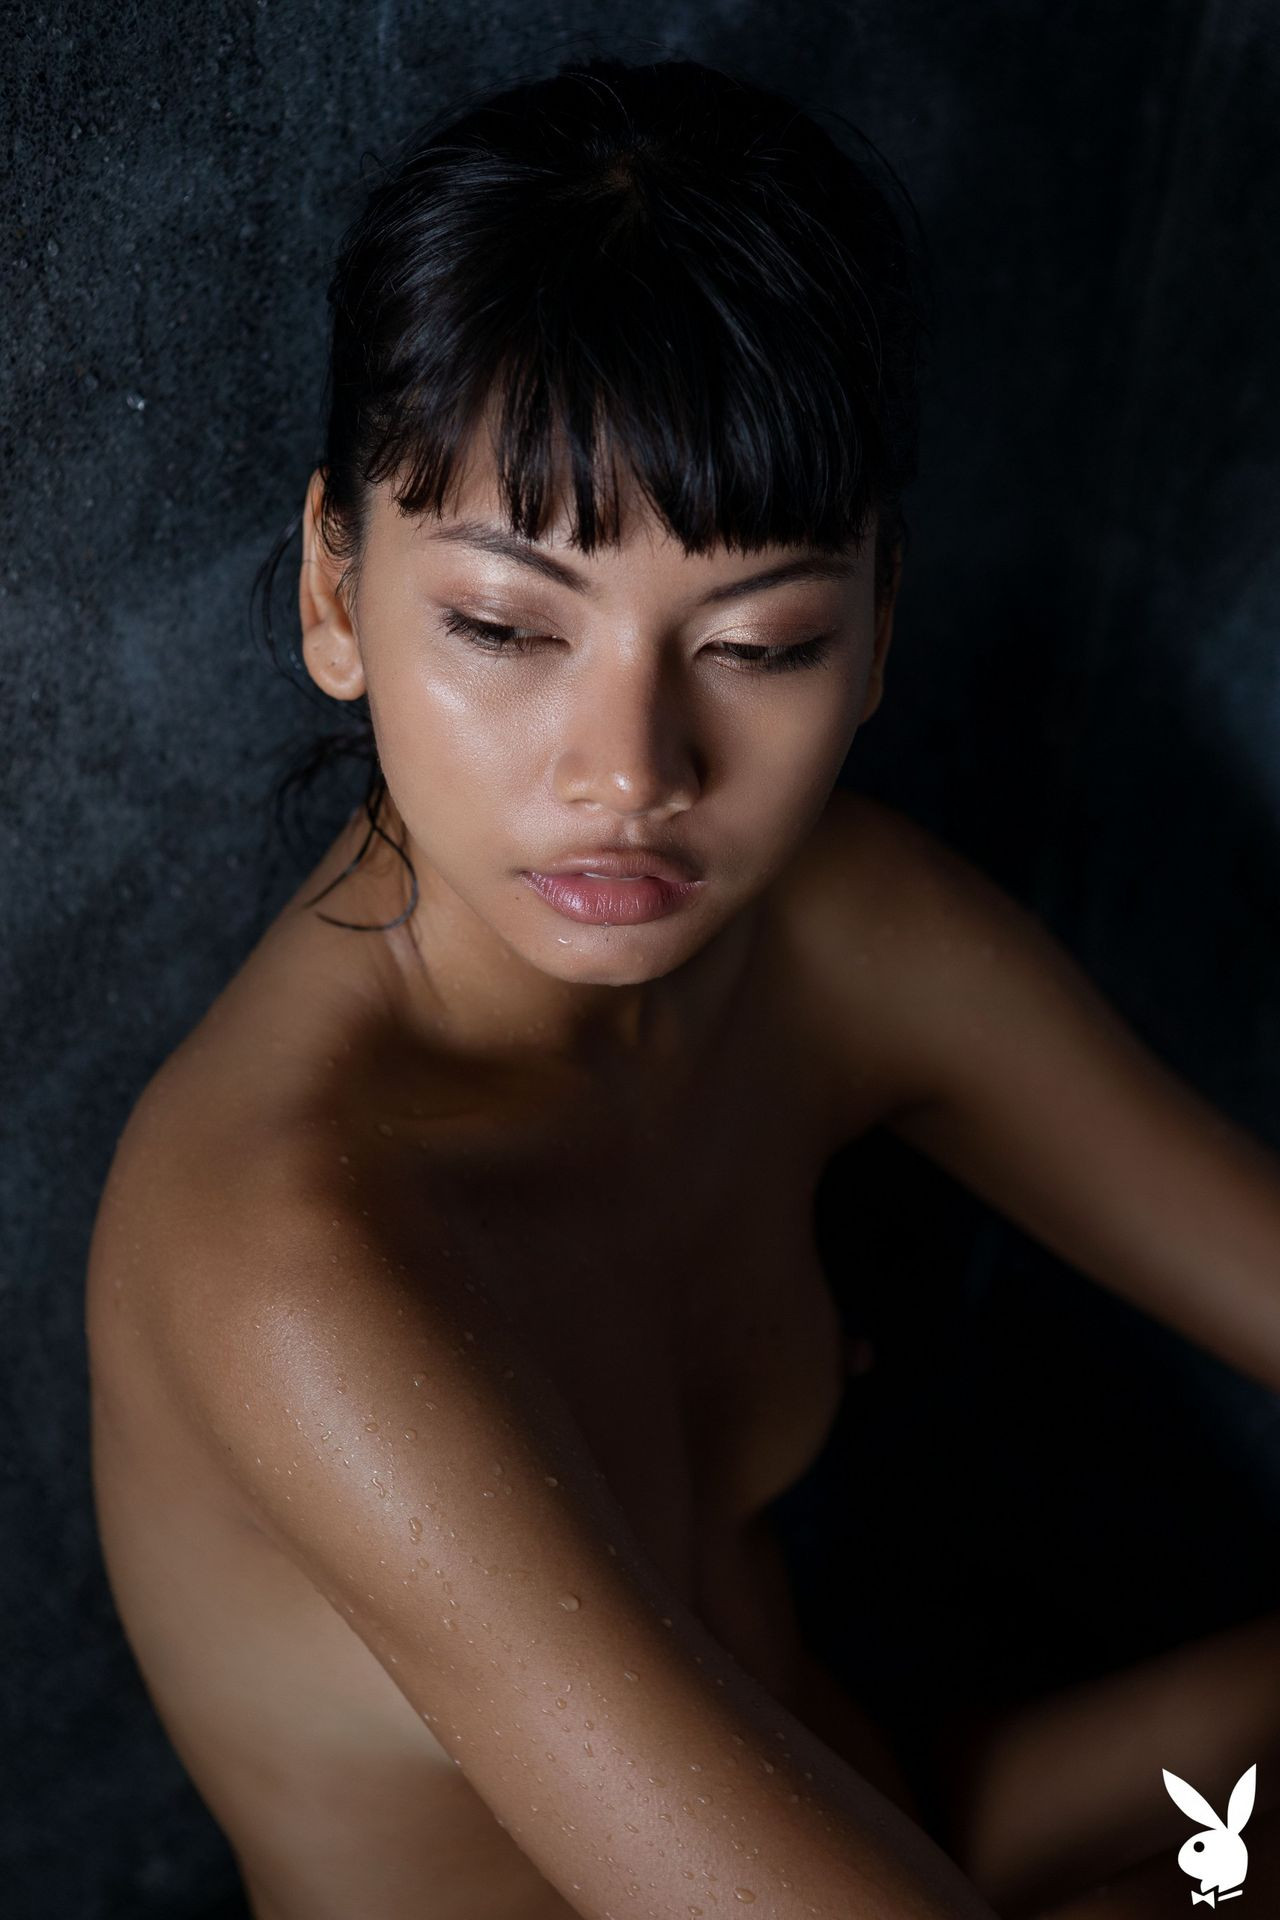 Cara Pin Nude Soft Shower thefappening.nu 10